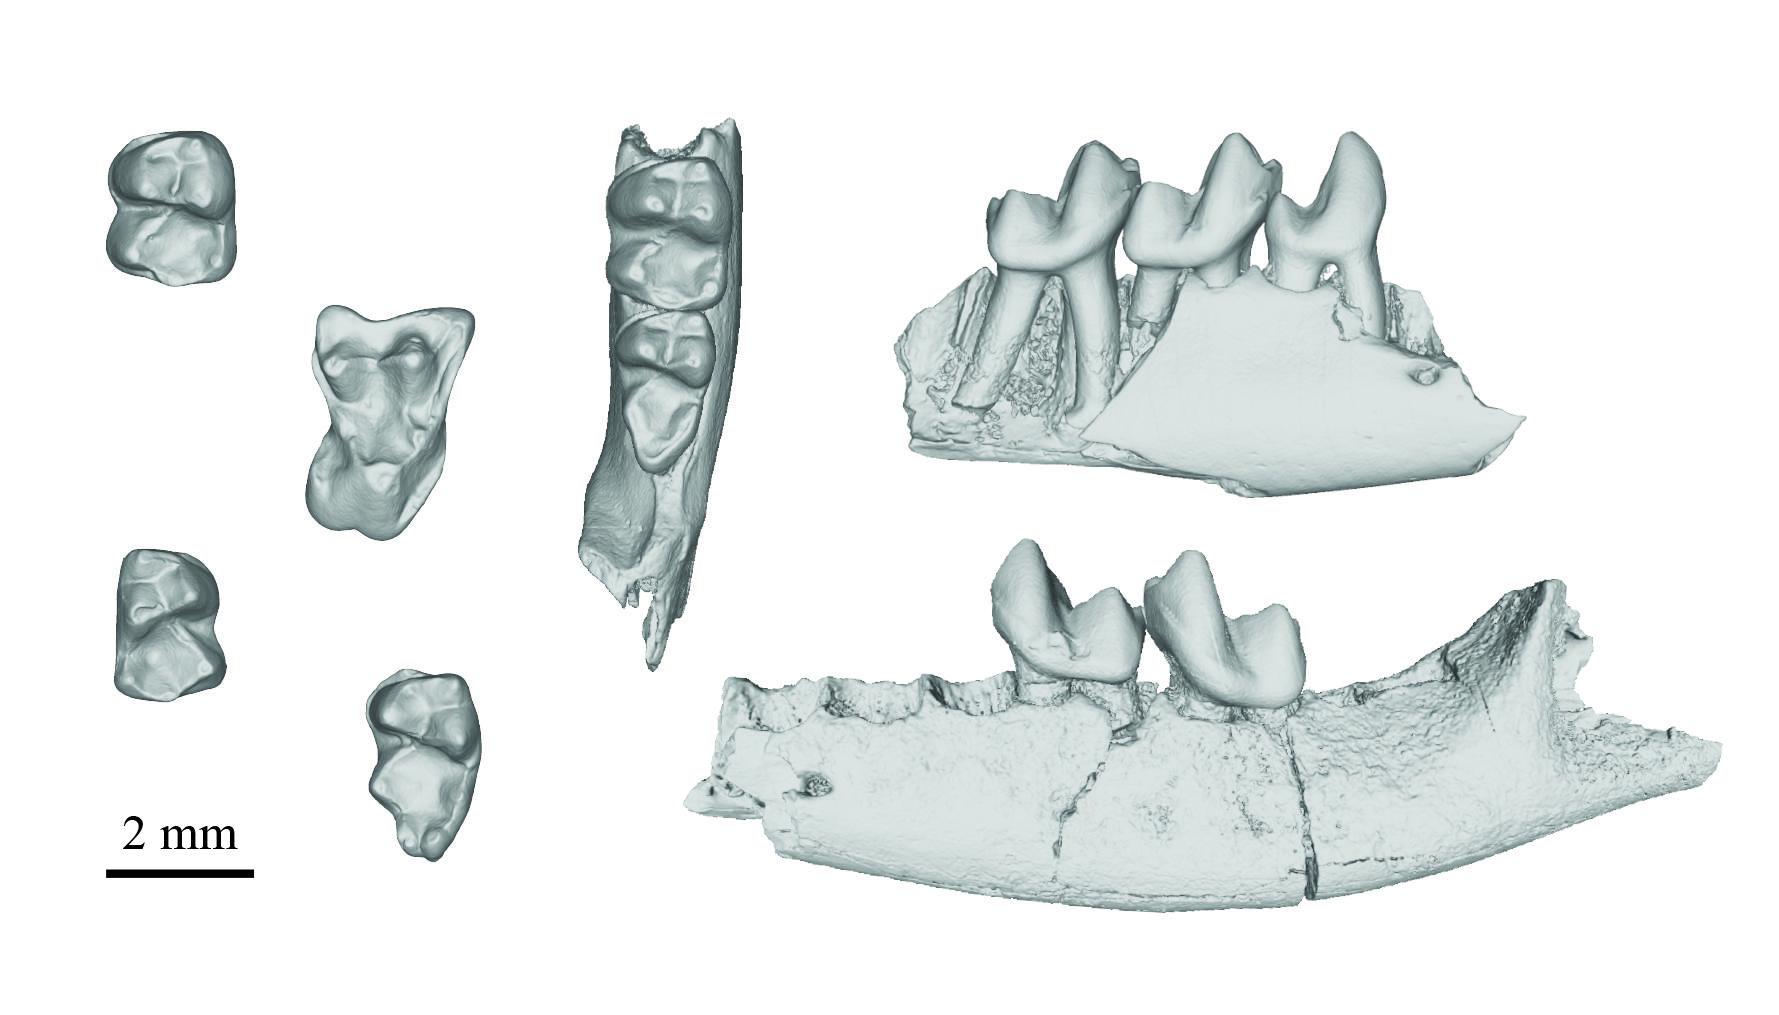 Several teeth, including some connected to jaw bones